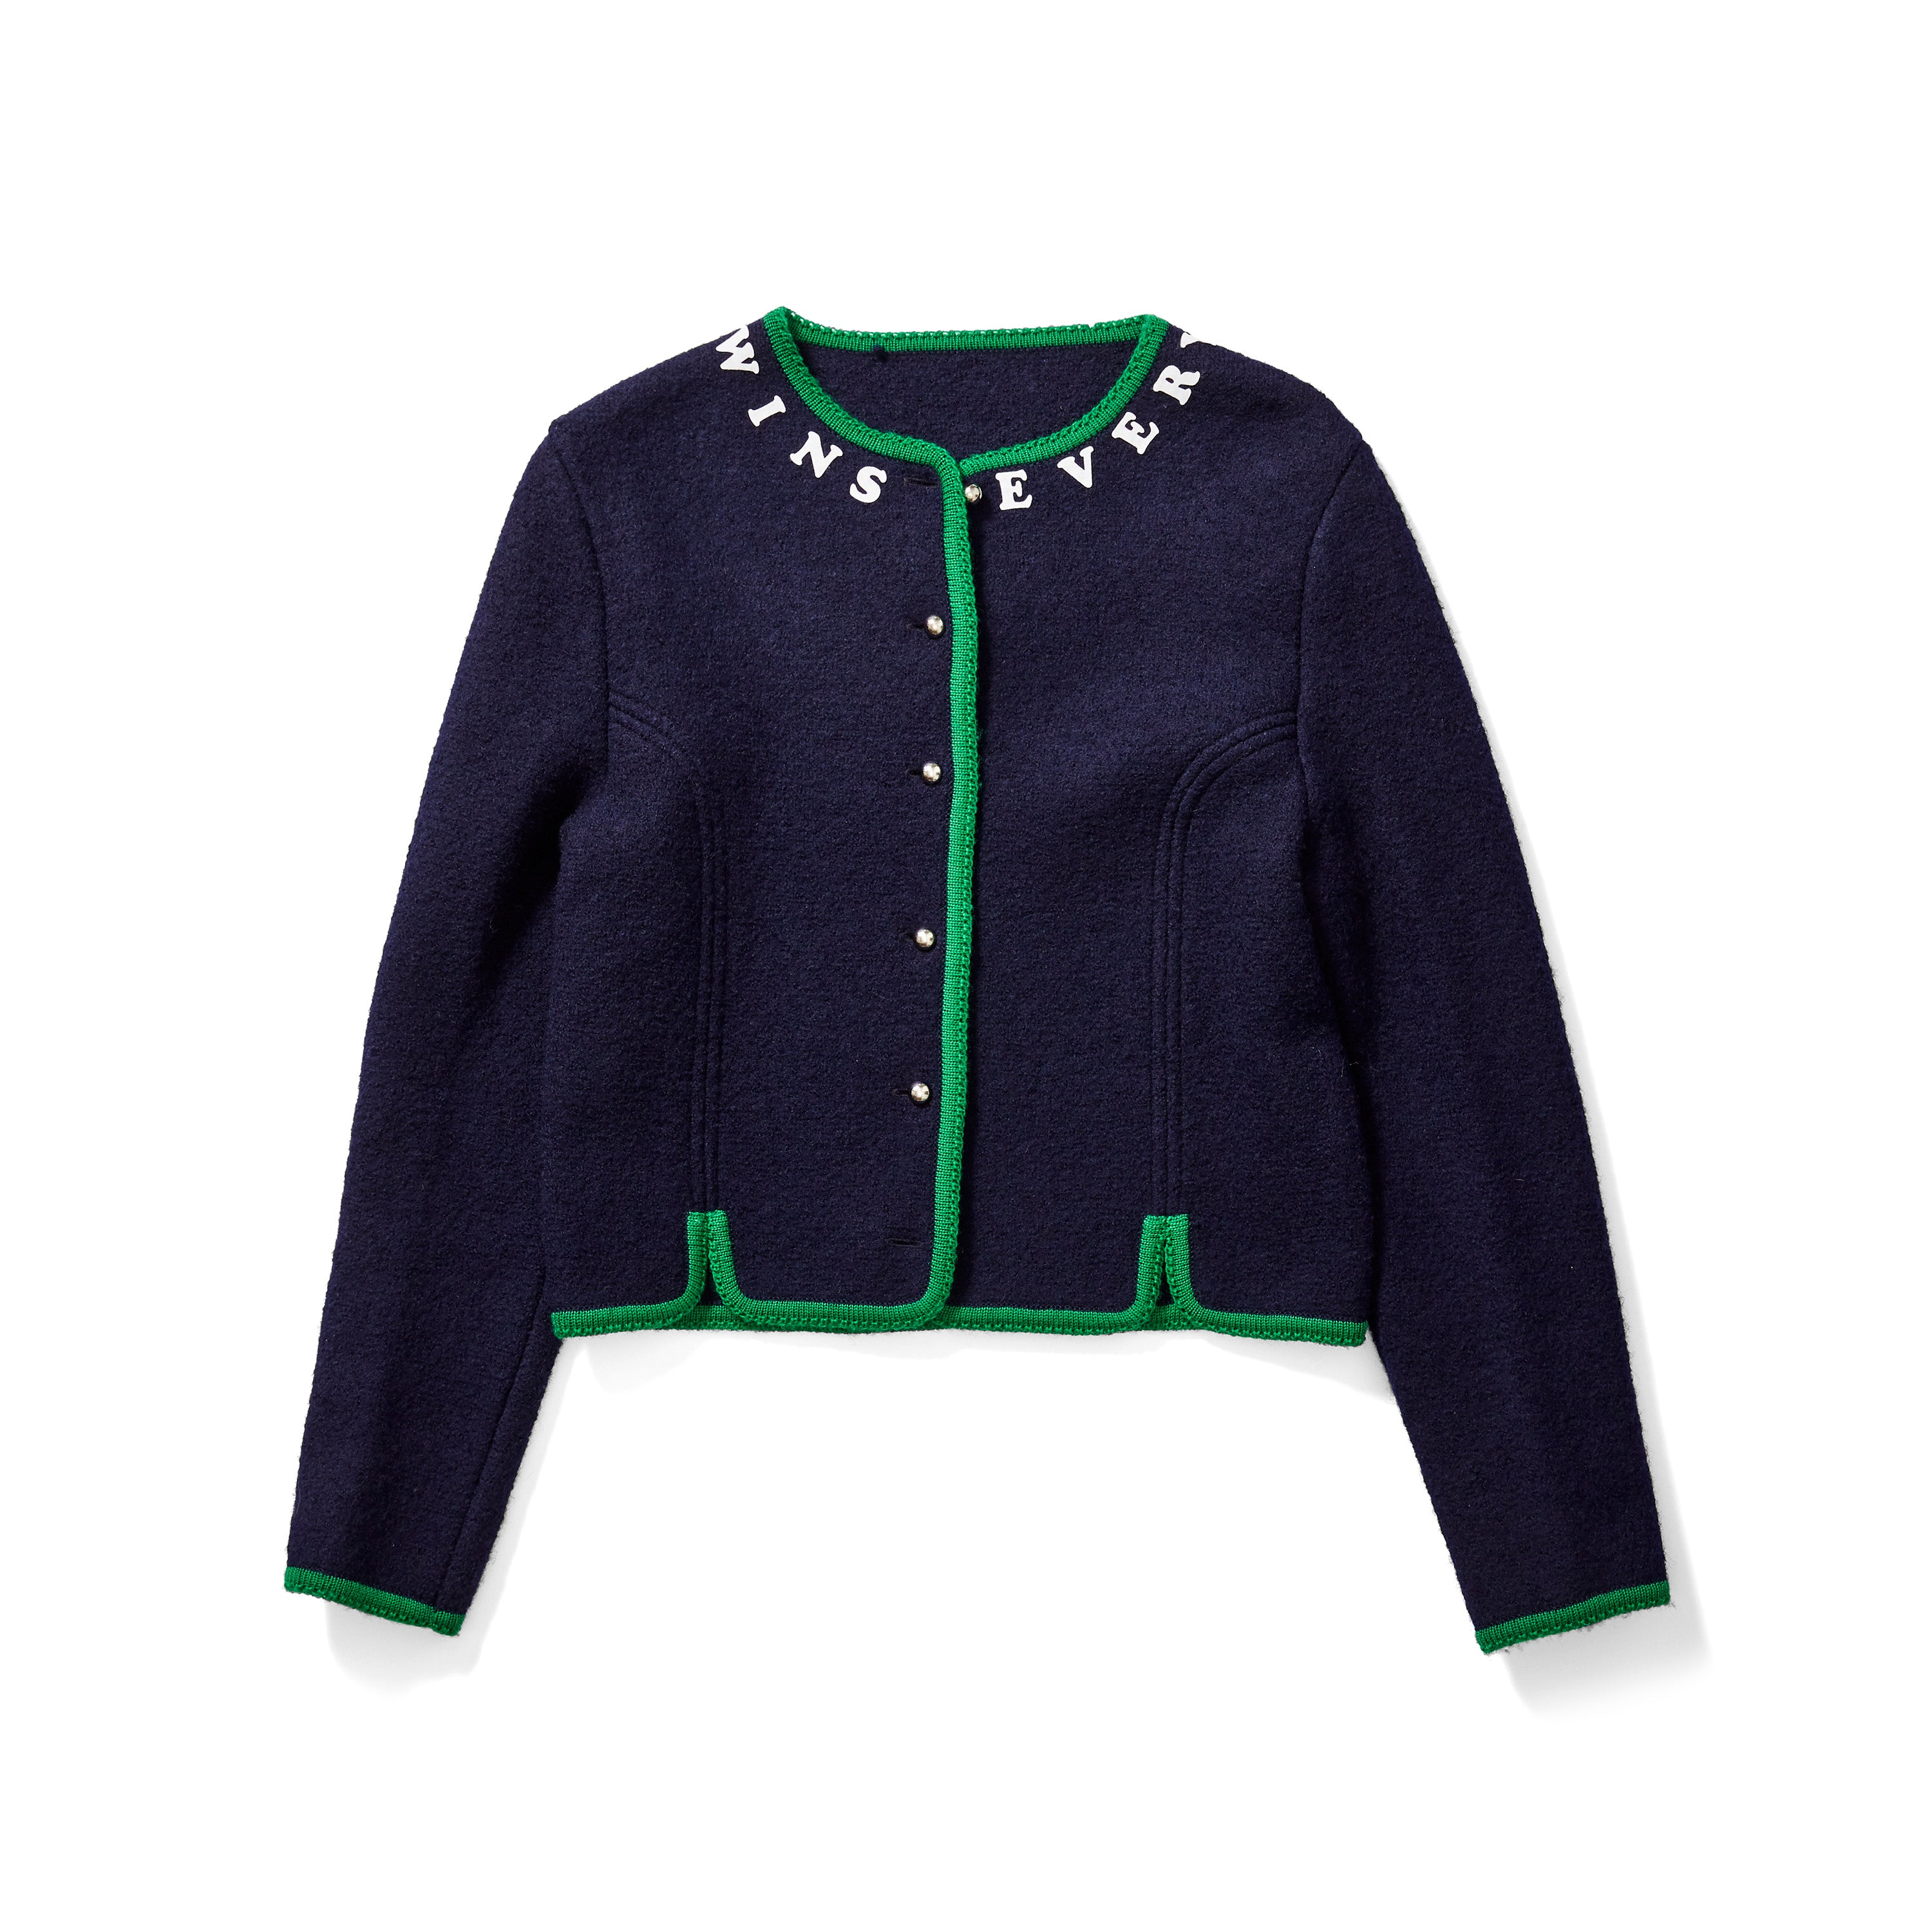 Navy & Green Cardigan with Velvet Lettering